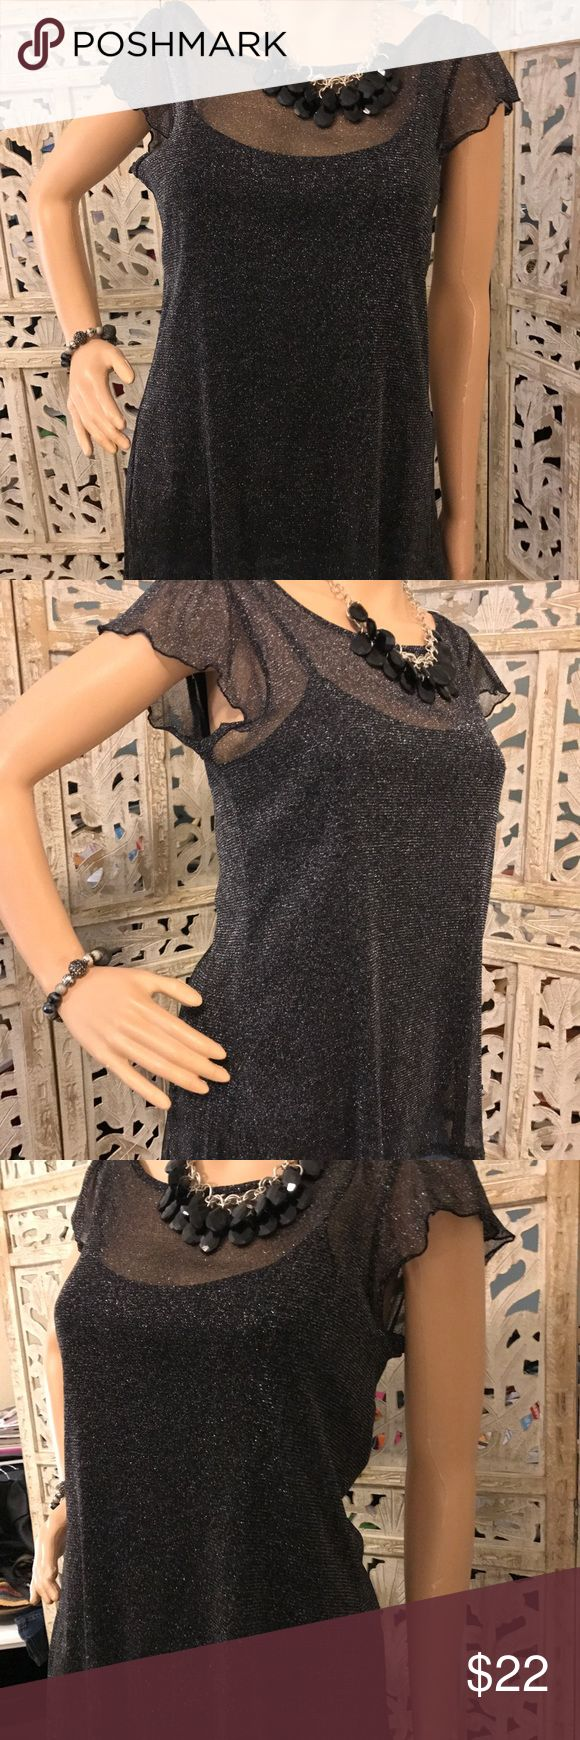 See thru bling shirt with tank attached This is a very elegant black sheer blouse with an attached black tank top. It has been previously Loved but still in good condition. No tears or stains. HeartSoul Tops Blouses